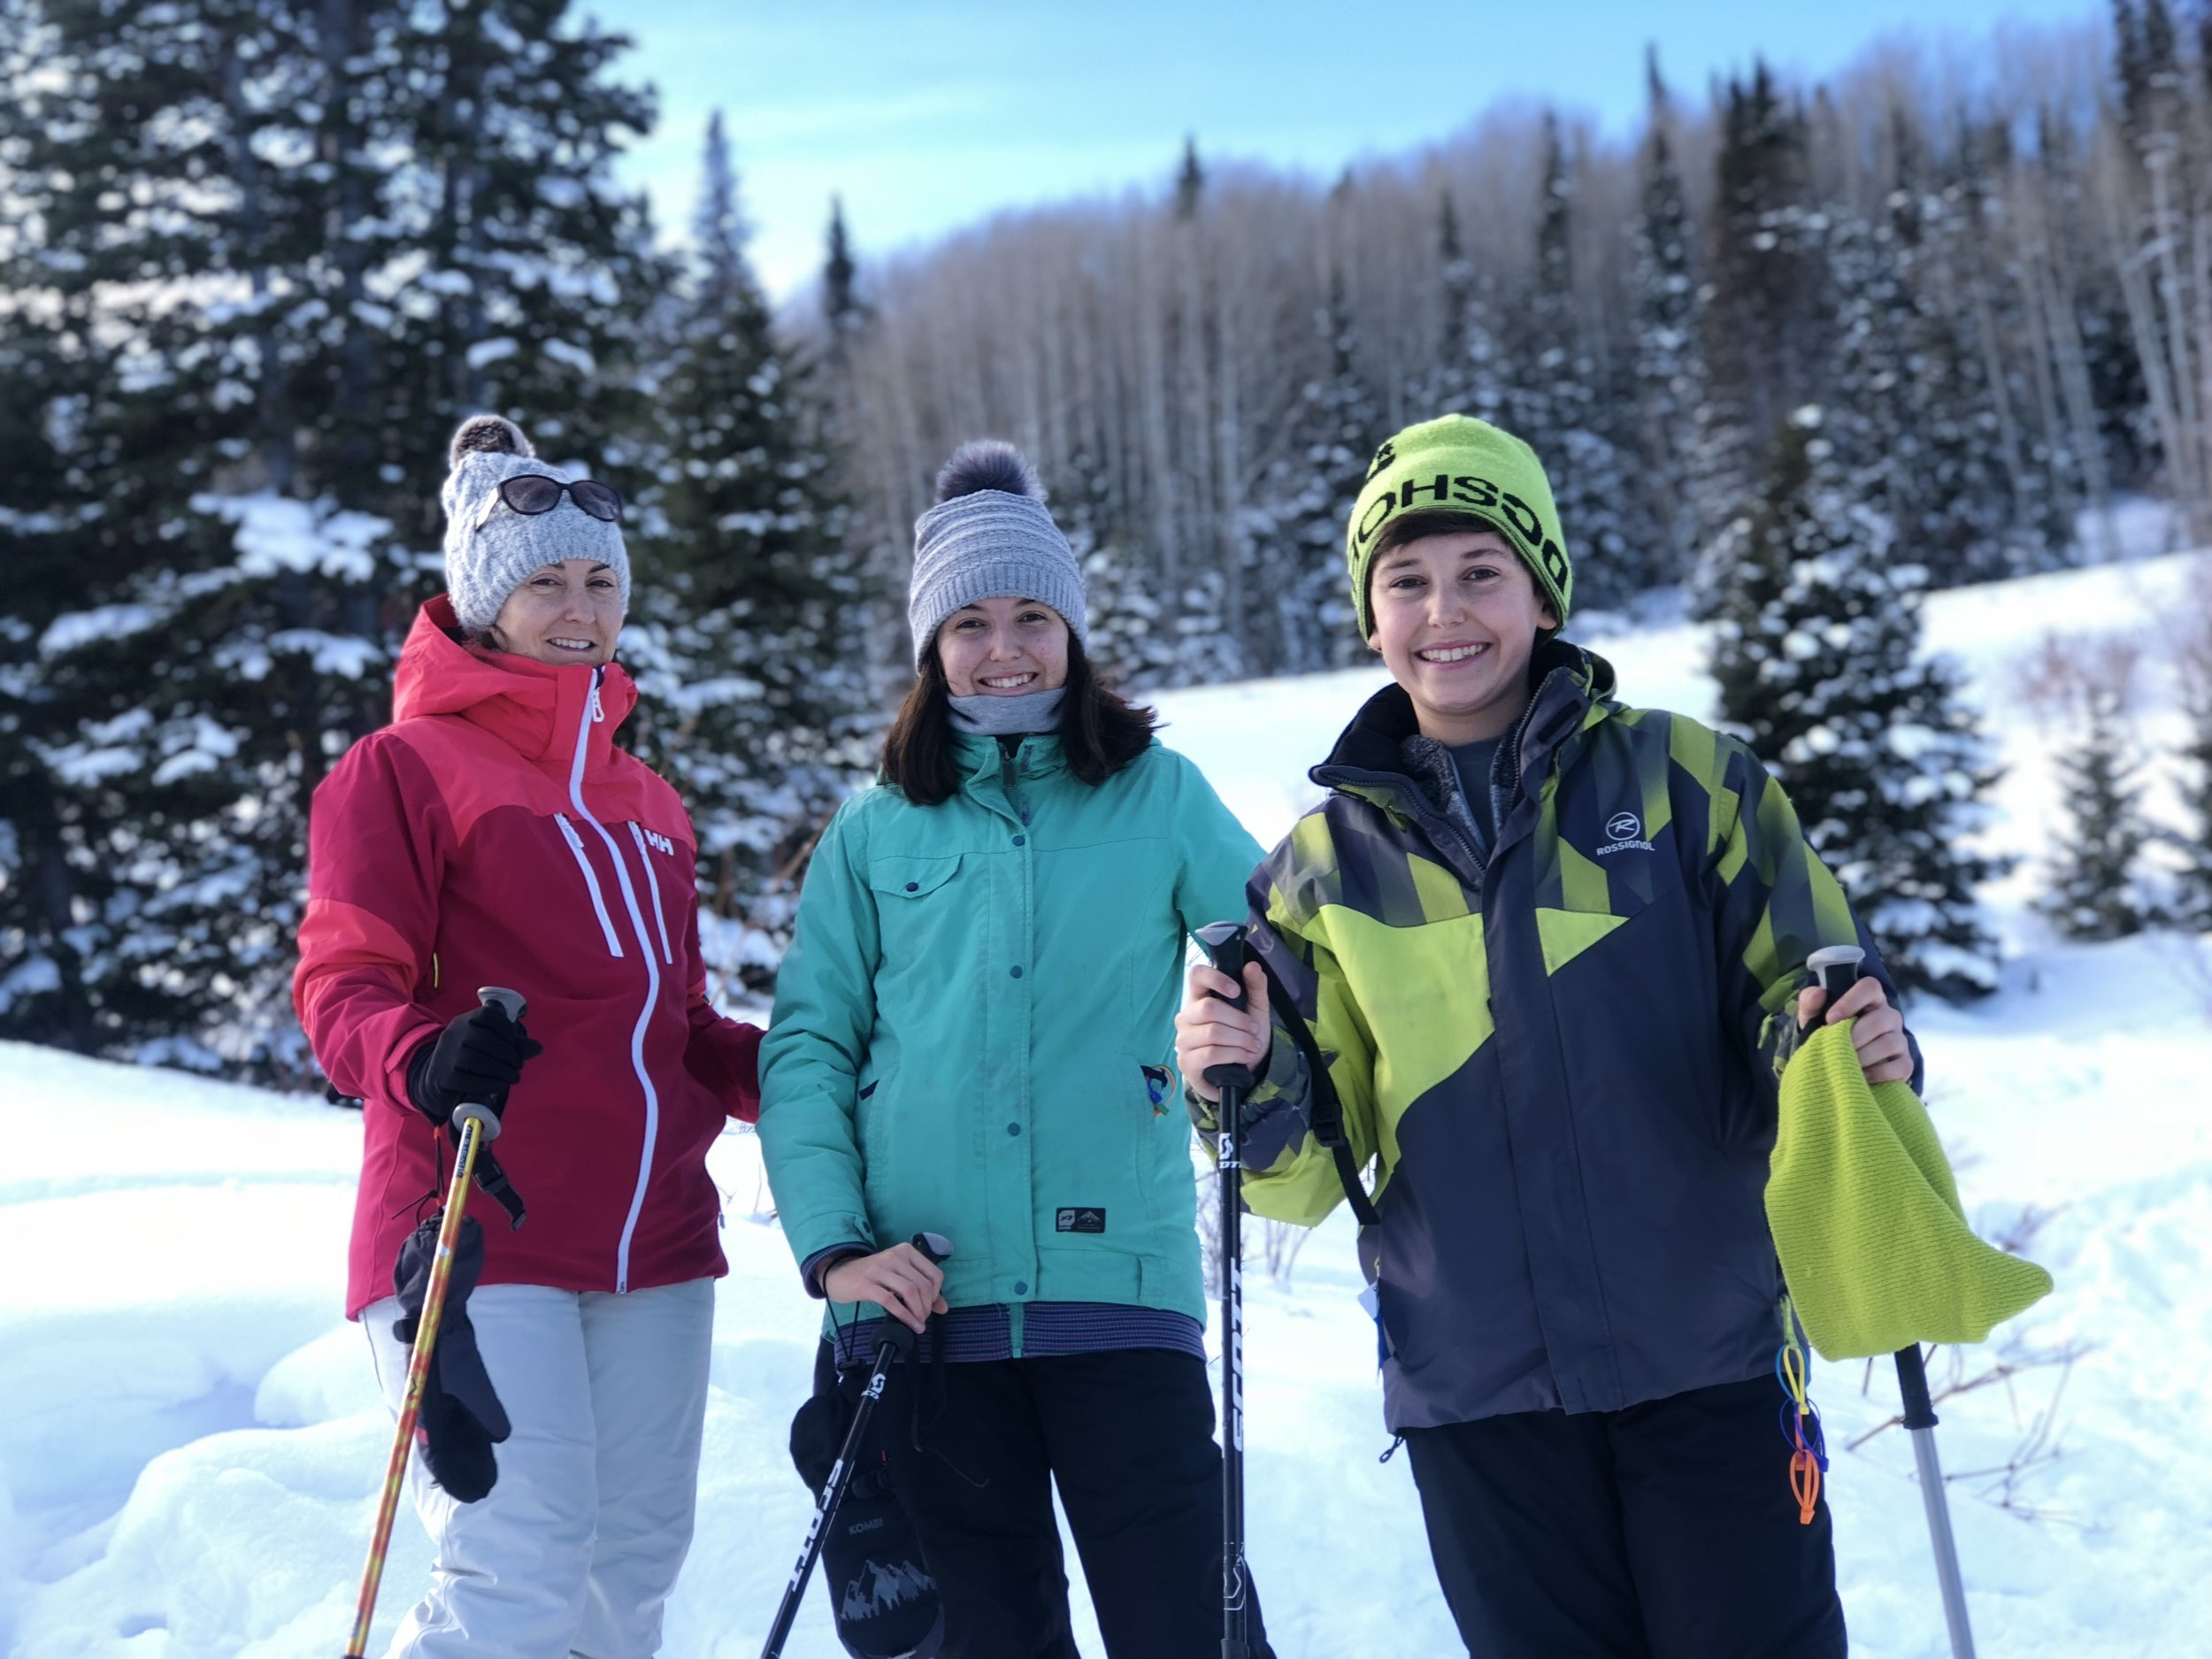 Park City-Deer Valley-Utah-voyage de ski-Skier-voyage en famille-The Lodges Deer Valley Resort-Je suis une maman